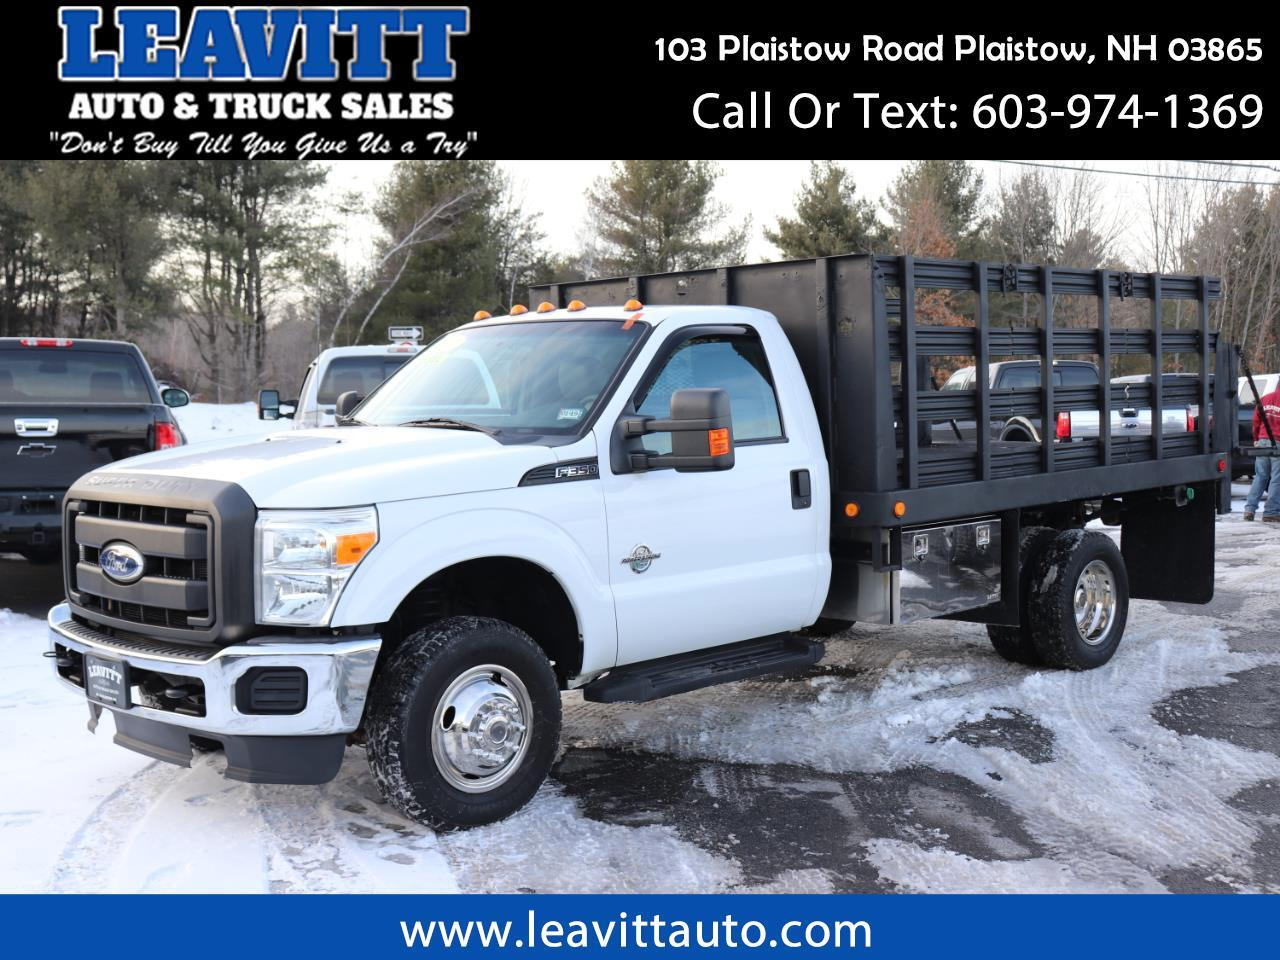 2011 Ford F-350 SD XL 4X4 RACK BODY 6.7L POWERSTROKE DIESEL